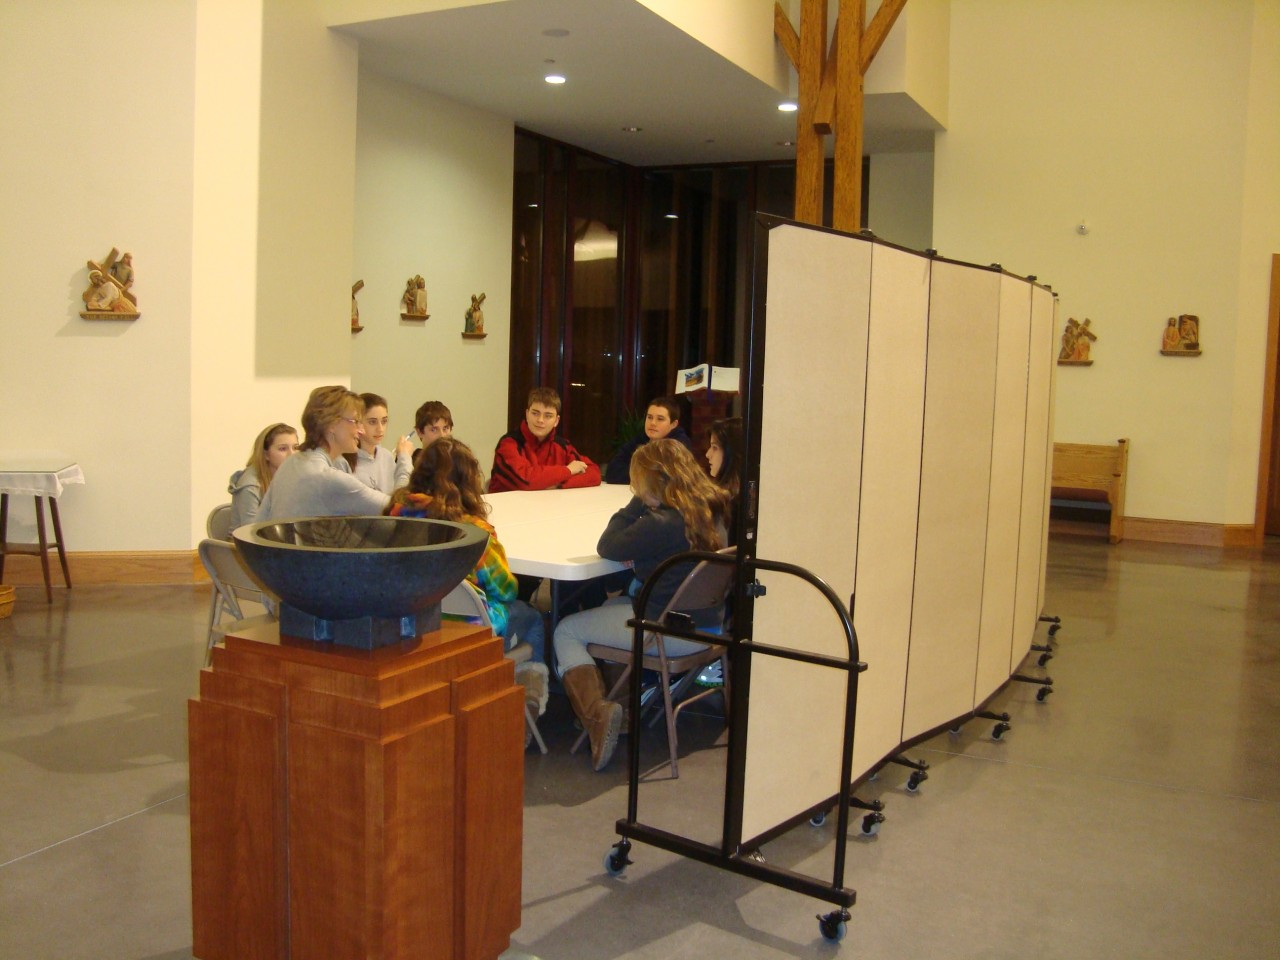 Church Room Divider makes a Classroom Area in Church